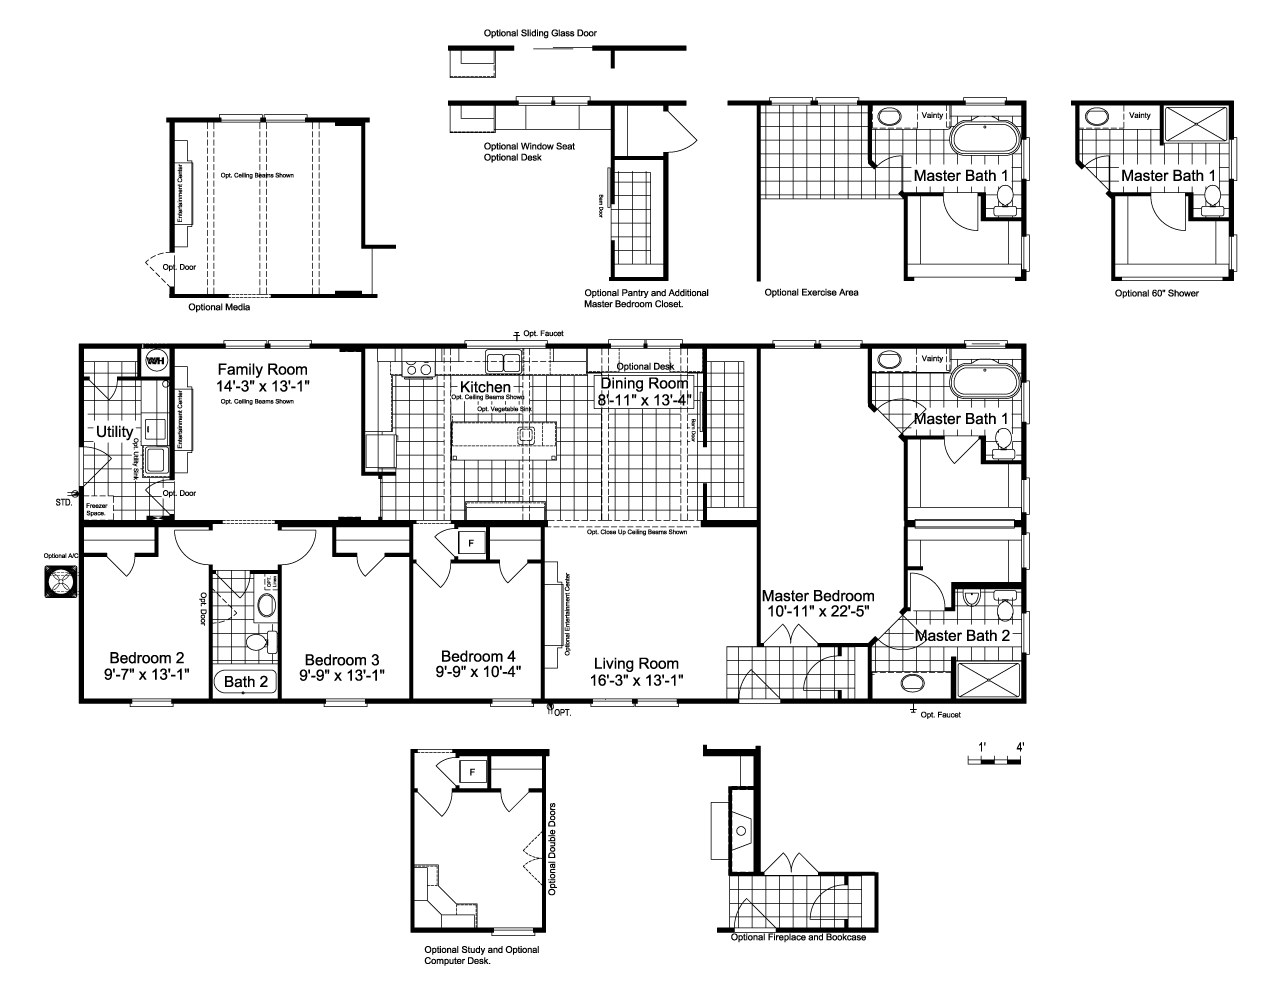 the lucky 7 model ii ml28724l manufactured home floor plan or